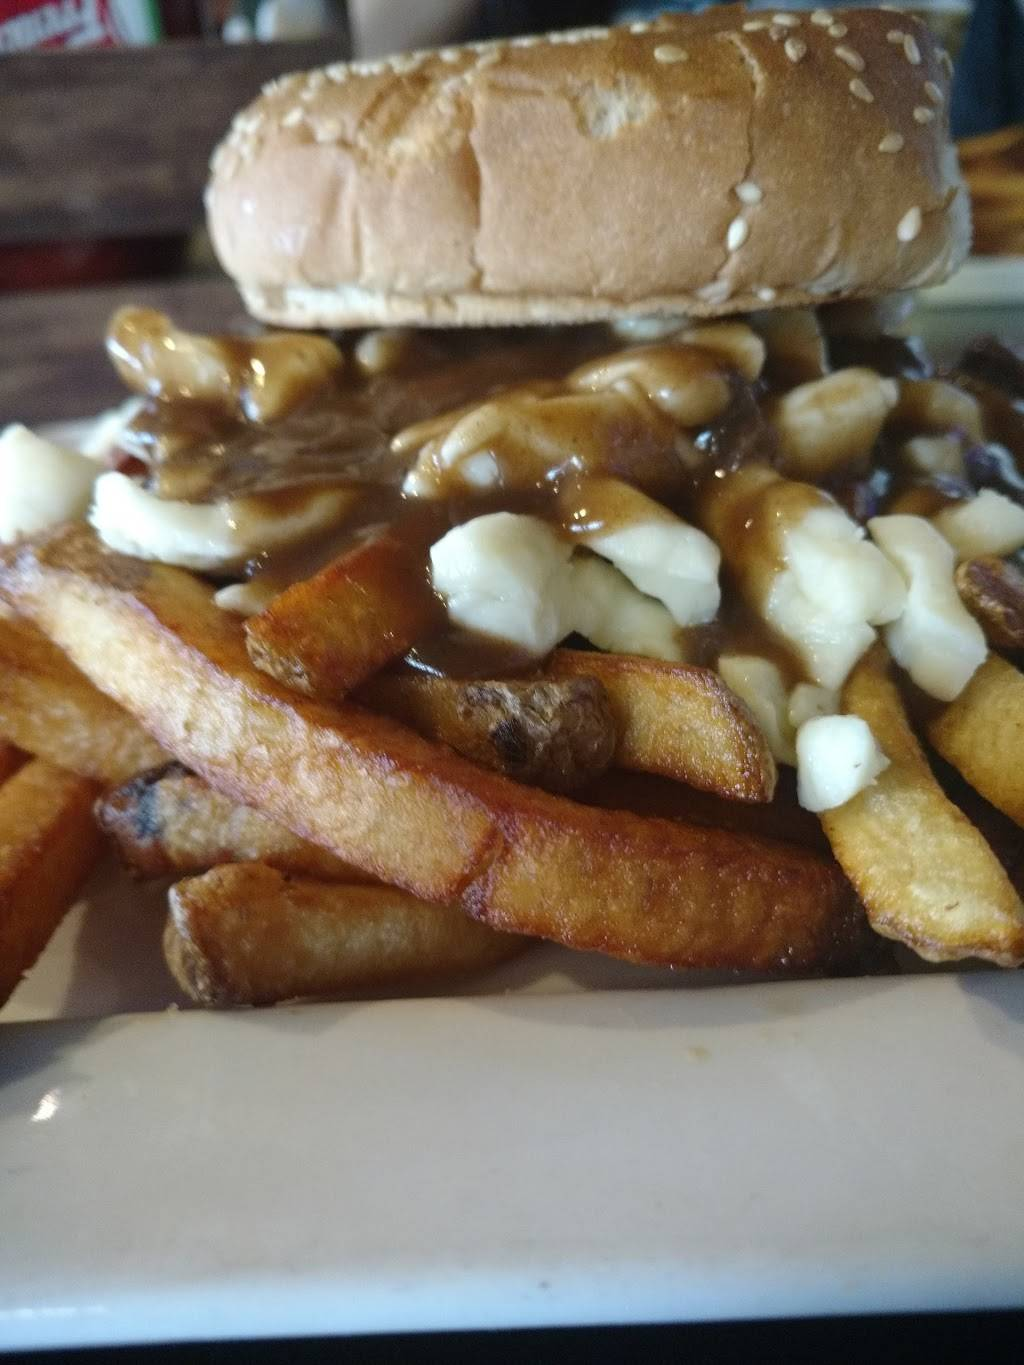 Ample Annies Roadhouse | restaurant | 219 Silvercreek Pkwy N, Guelph, ON N1H 7K4, Canada | 5198361179 OR +1 519-836-1179